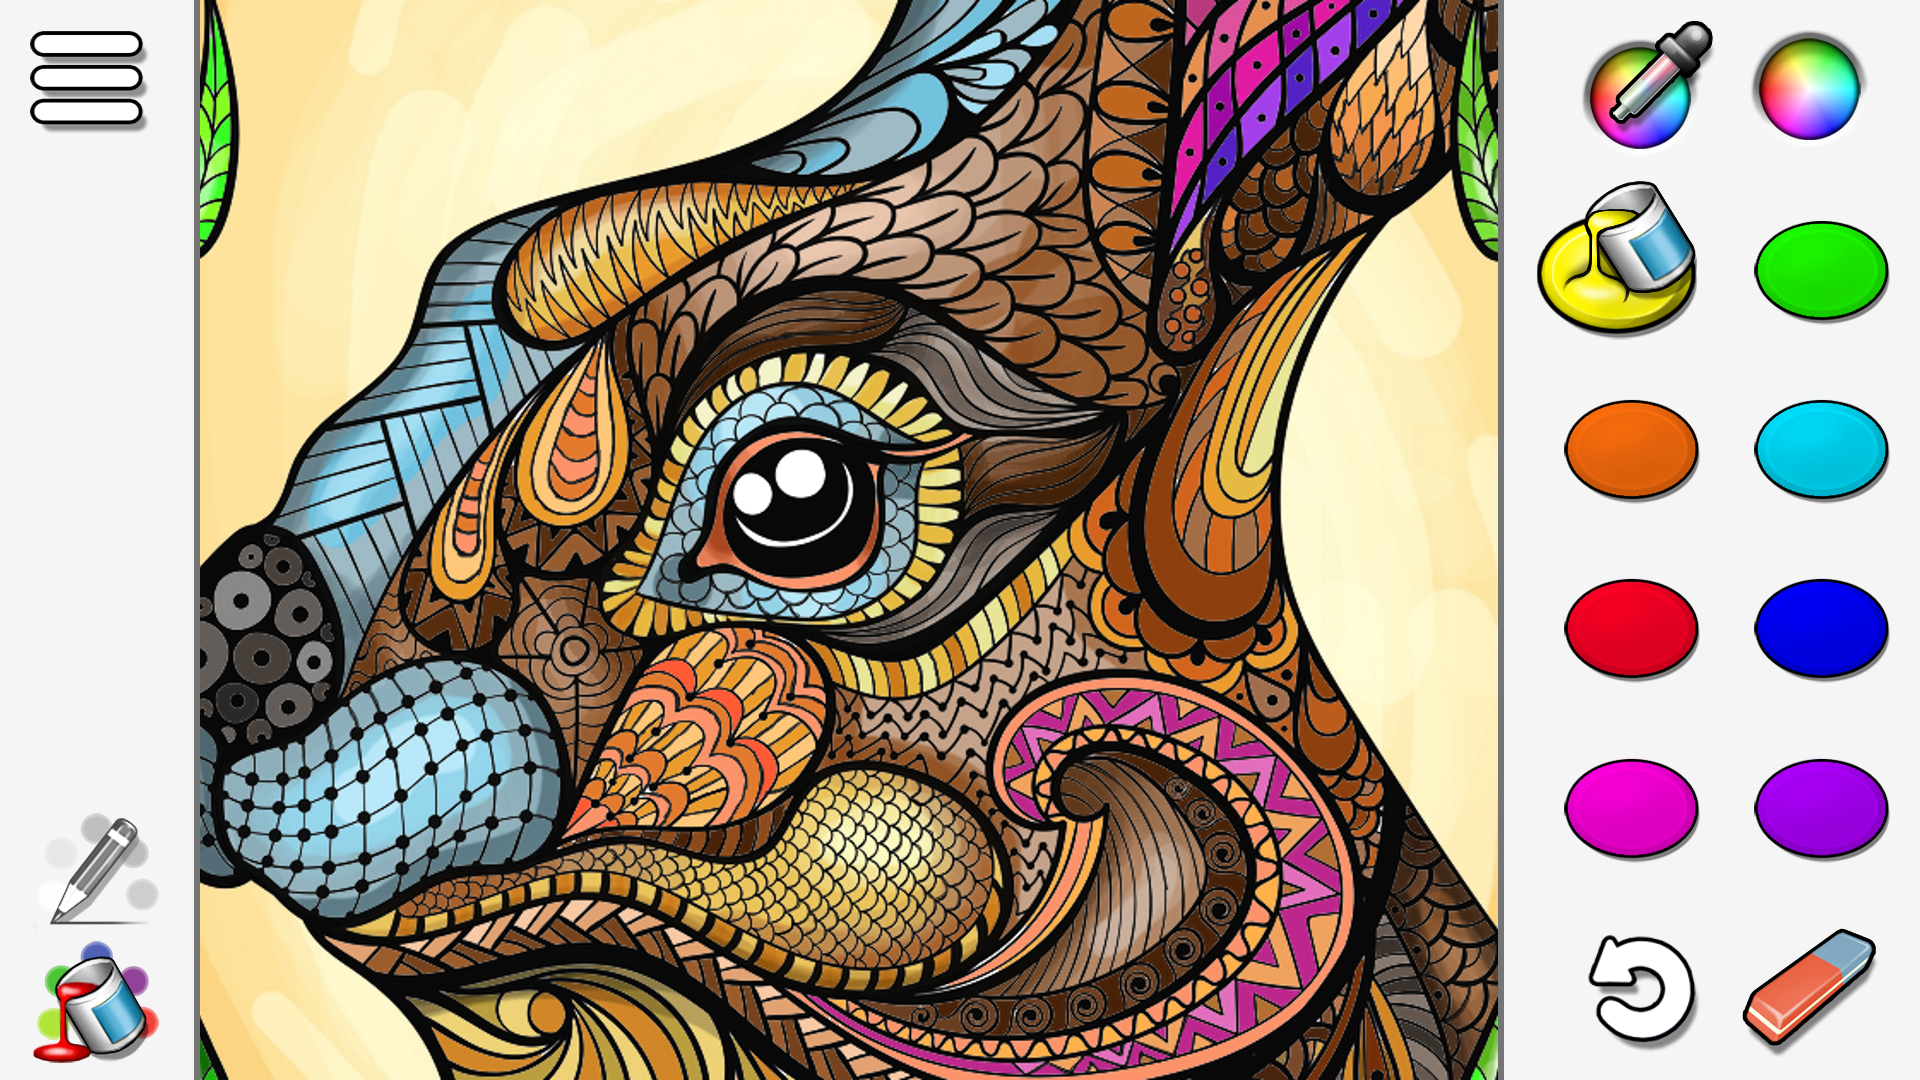 Amazon.com: Coloring: Appstore for Android.